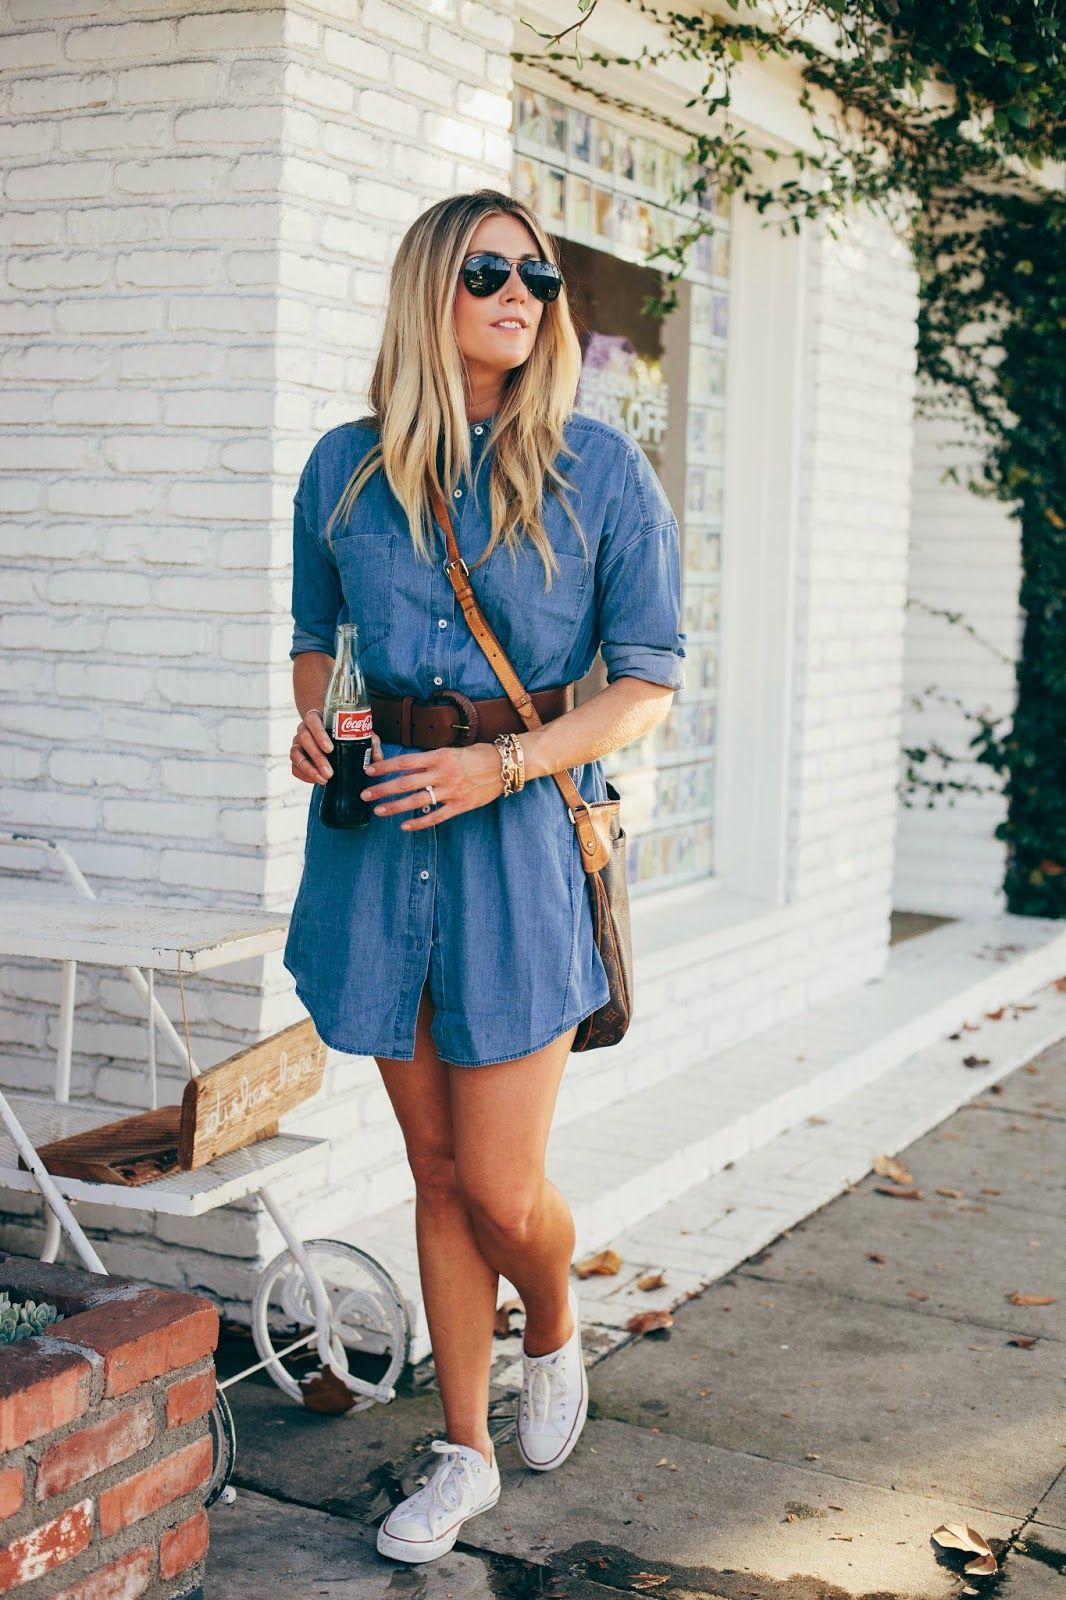 Shoes with a denim dress